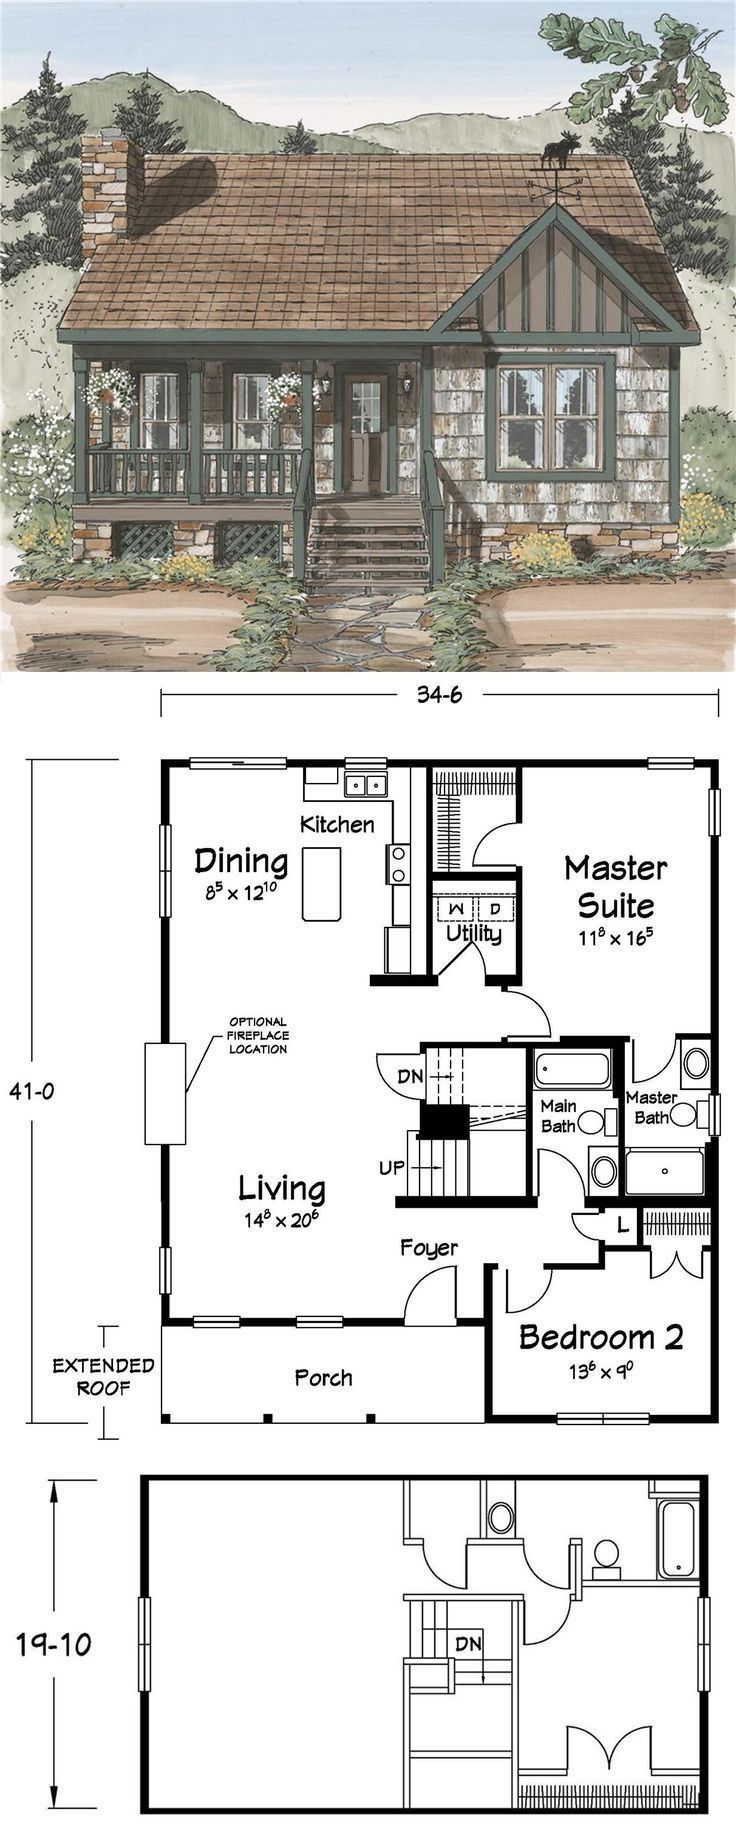 Pin By Sean Piette On House Plan Basement House Plans Cottage Plan House Plans